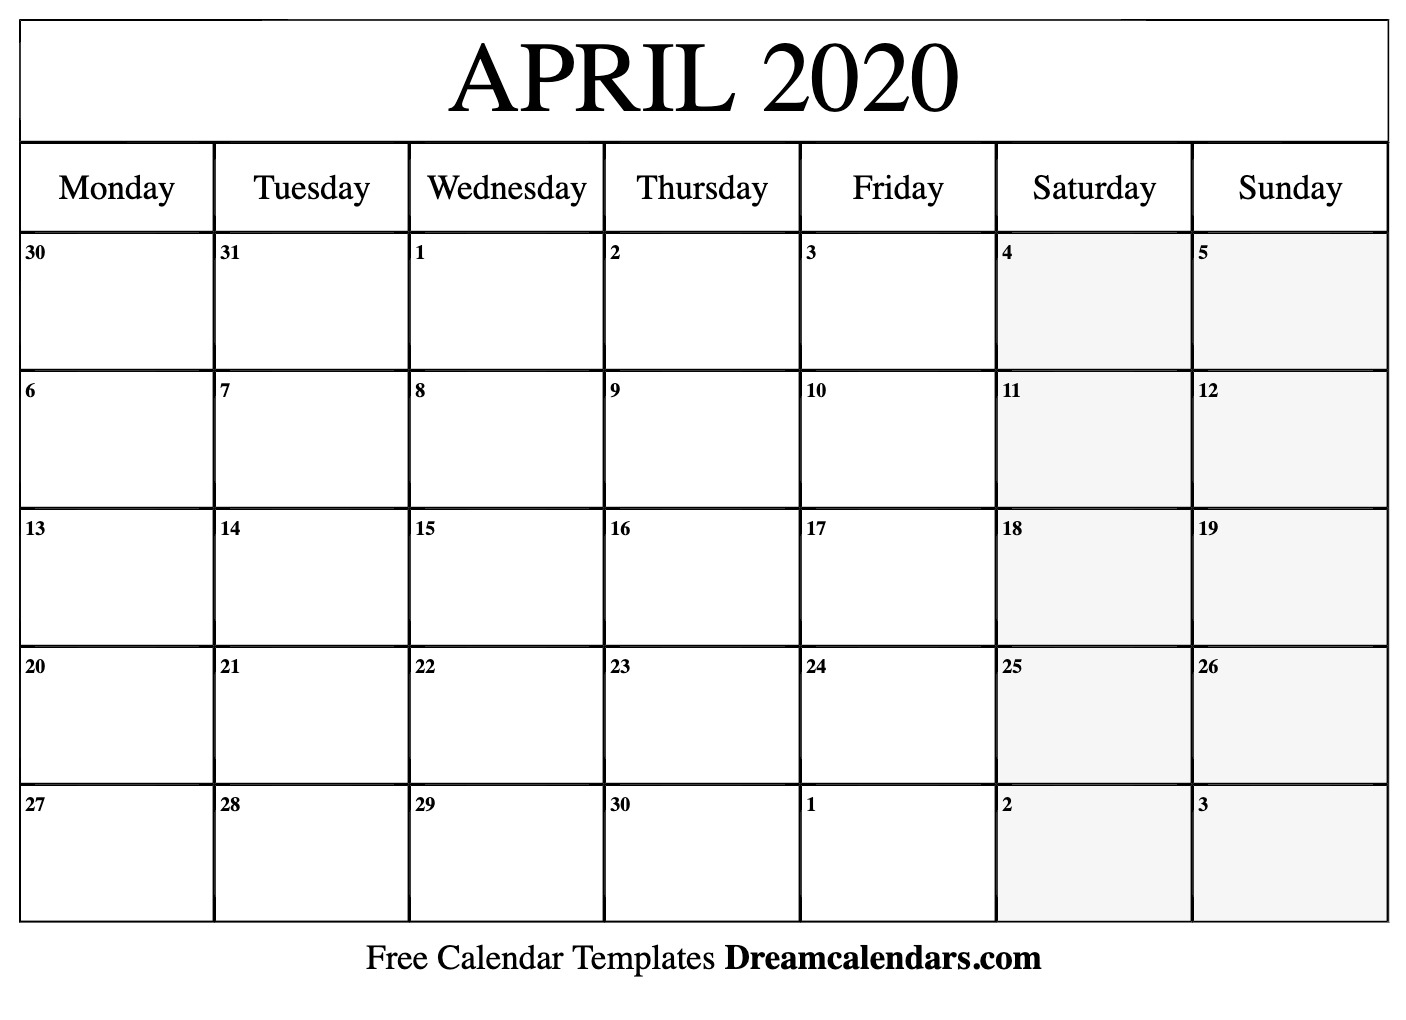 Printable April 2020 Calendar in 2020 Printable Calendar Starting With Monday